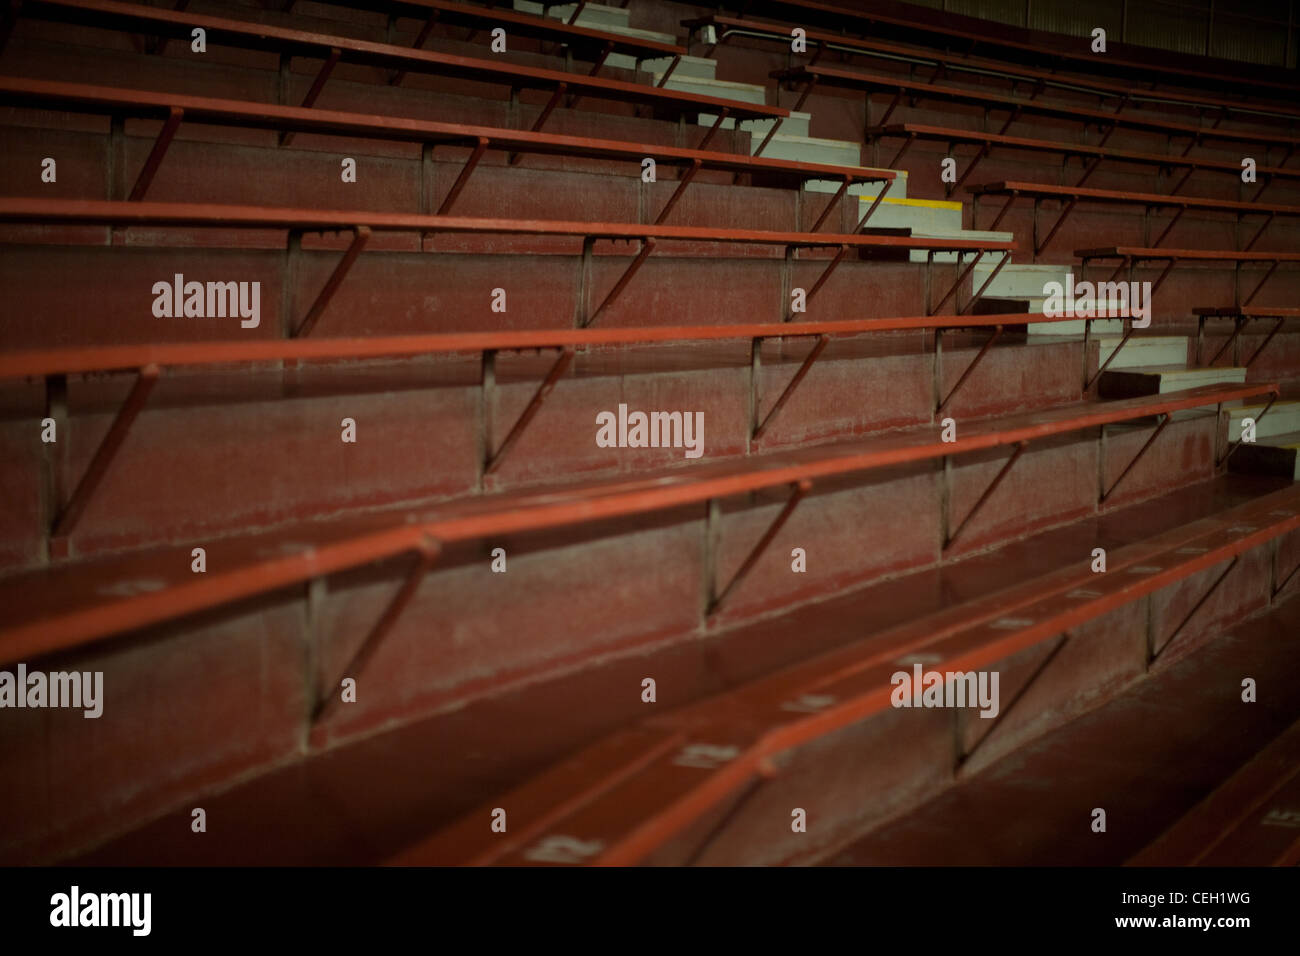 Empty bleacher grandstand rows of seats in a large auditorium - Stock Image